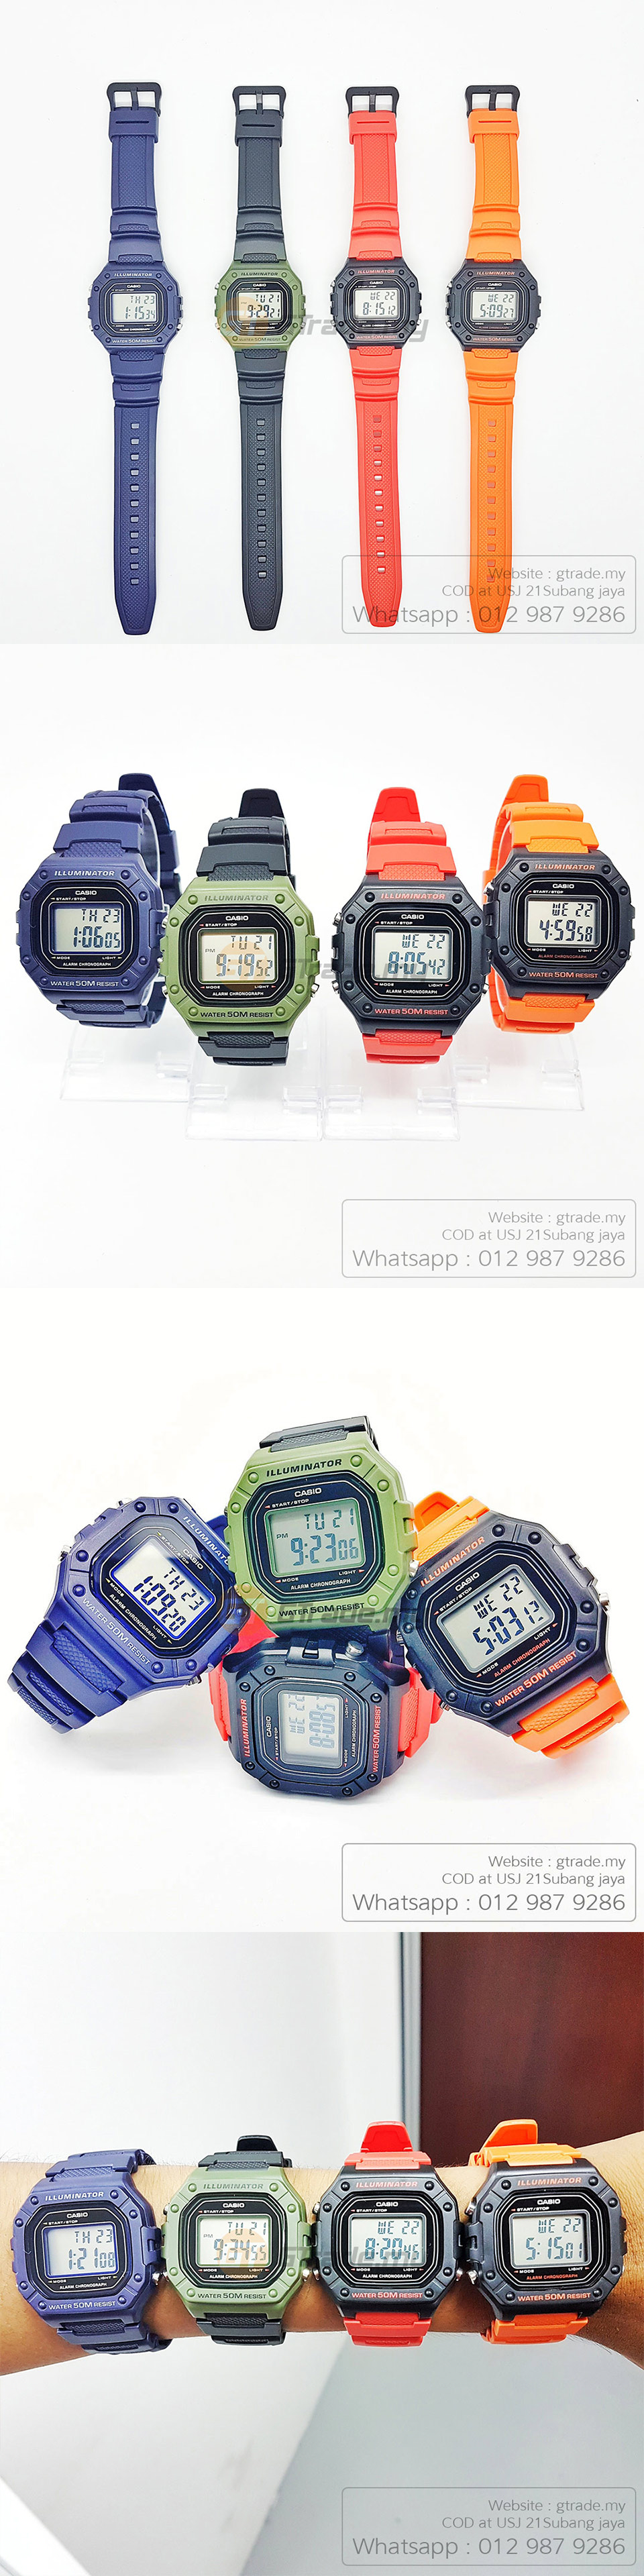 casio-g-shock-watch-black-x-red-heritage-color-dw-5600hr-1e-r